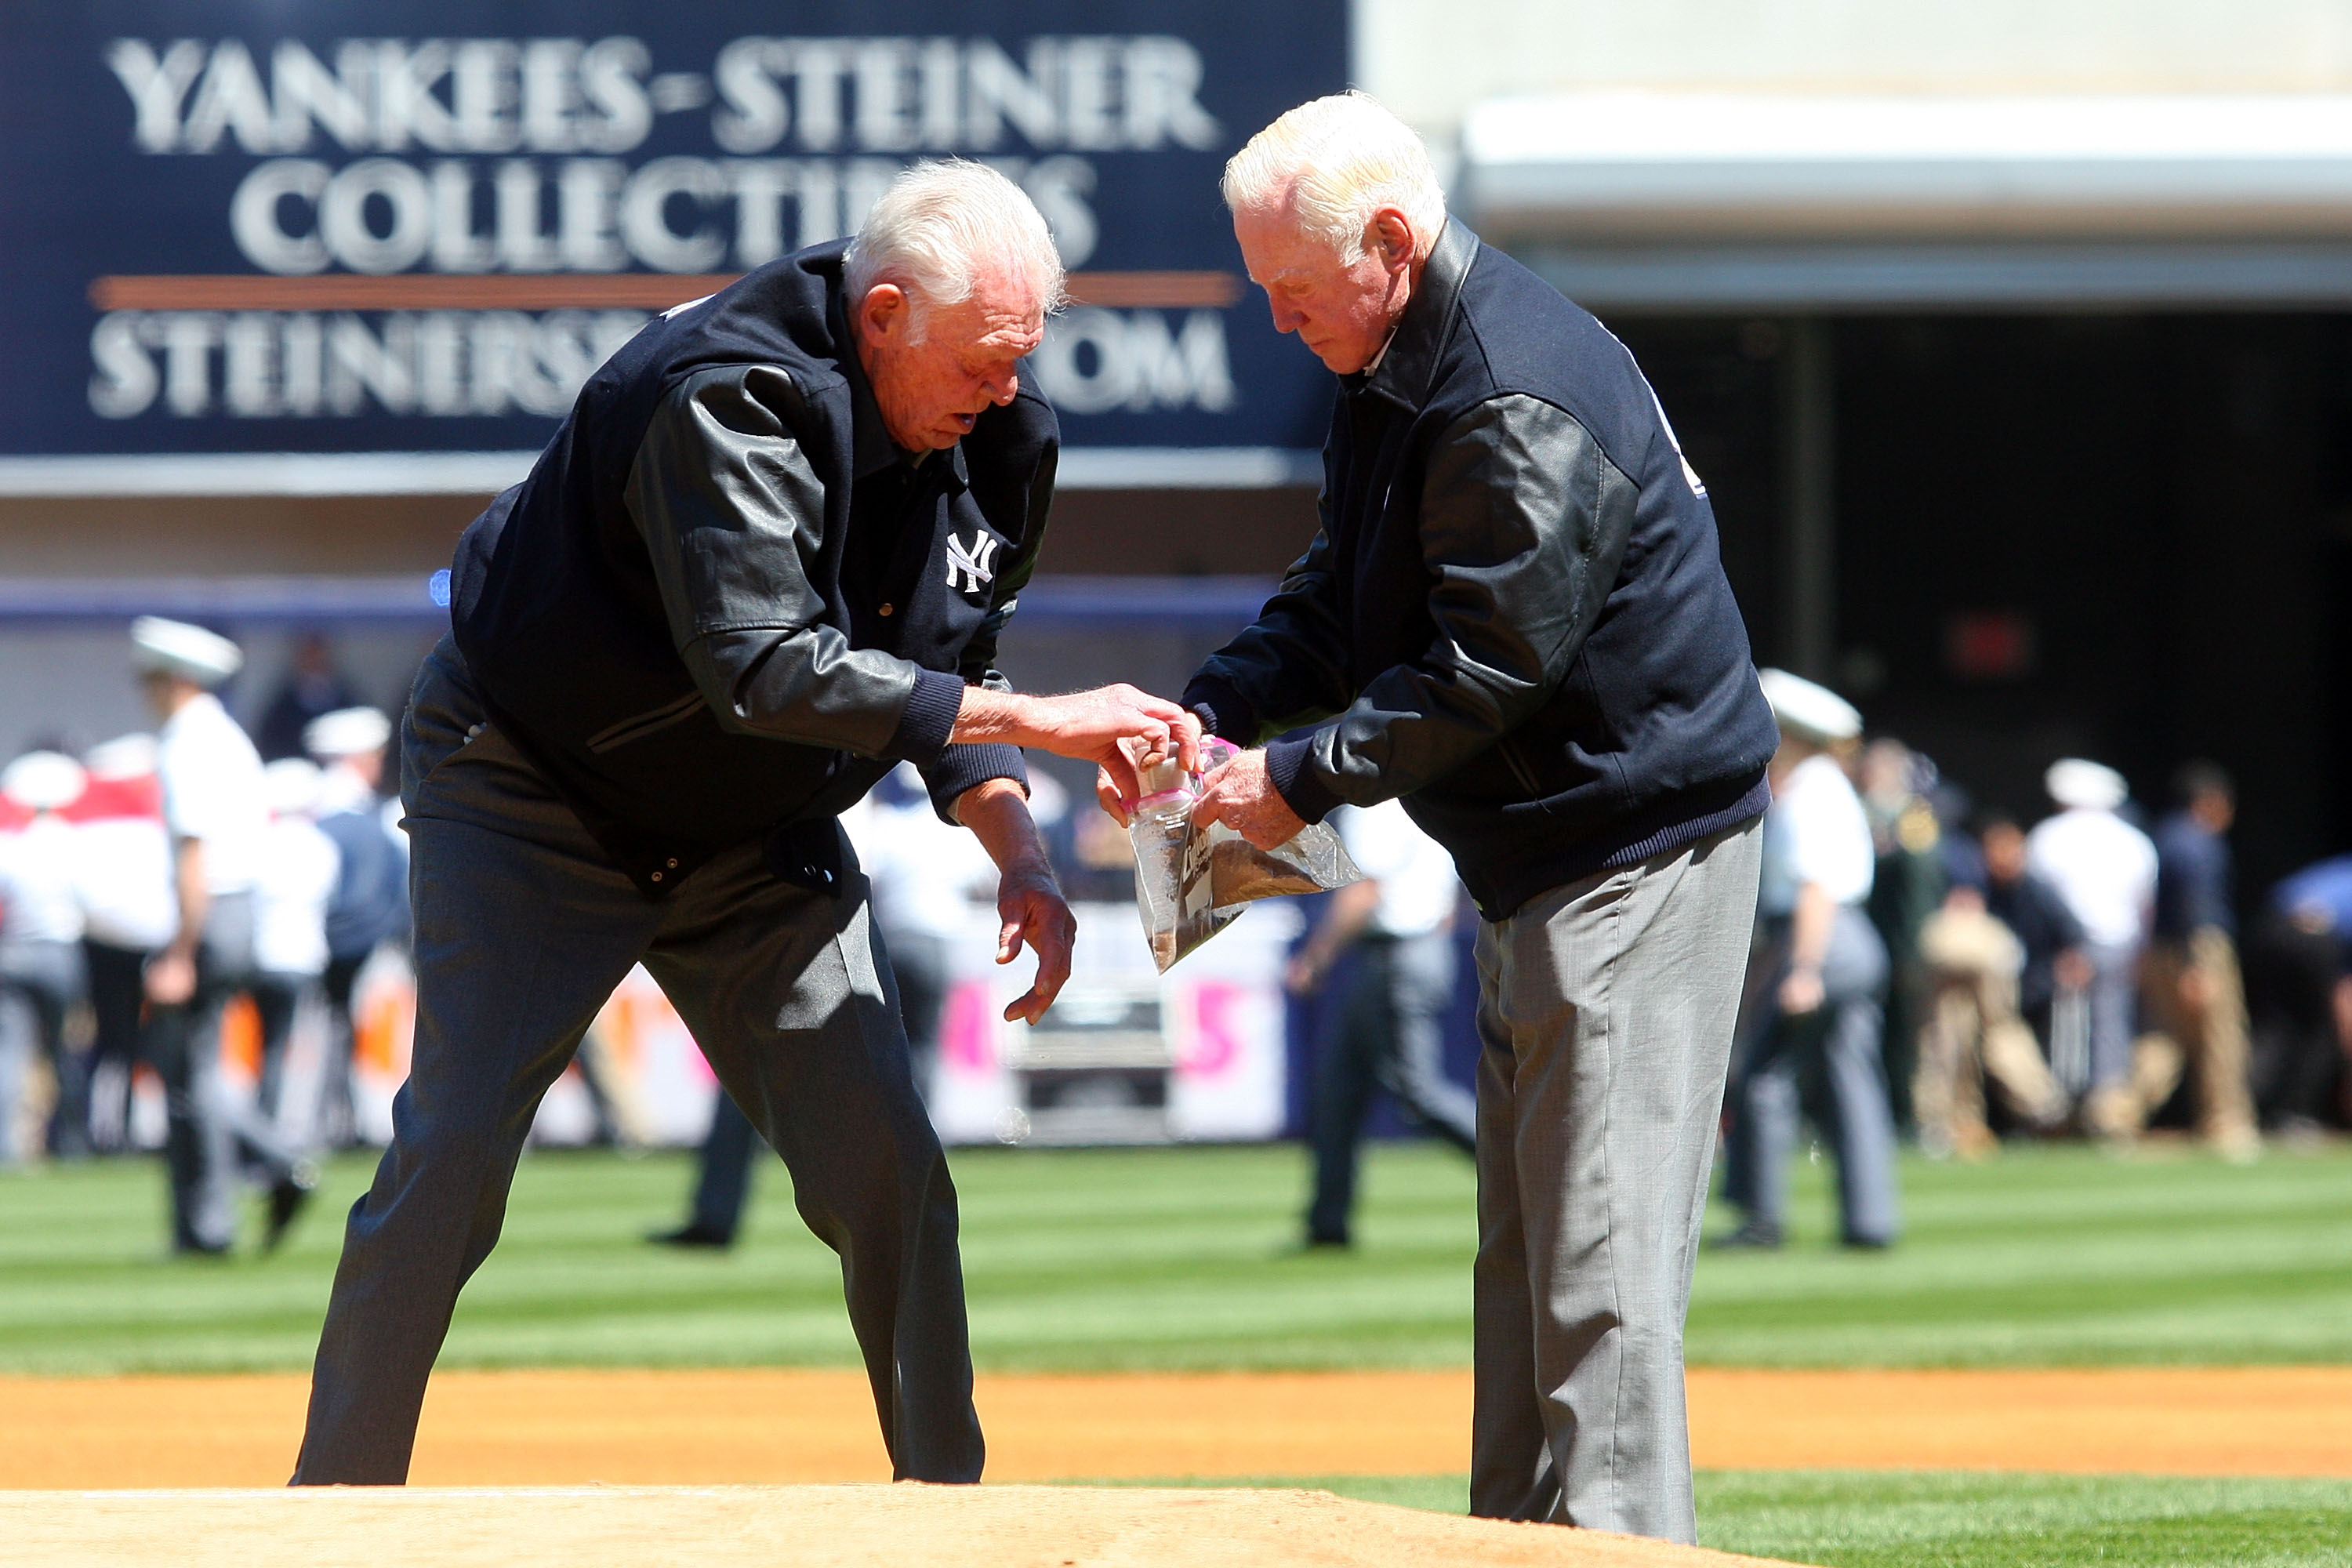 NEW YORK - APRIL 16:  Former New York Yankees Don Larsen and Whitey Ford take dirt from the pitchers mound during an opening day ceremony at the new Yankee Stadium on April 16, 2009 in the Bronx borough of New York City. This is the first regular season M